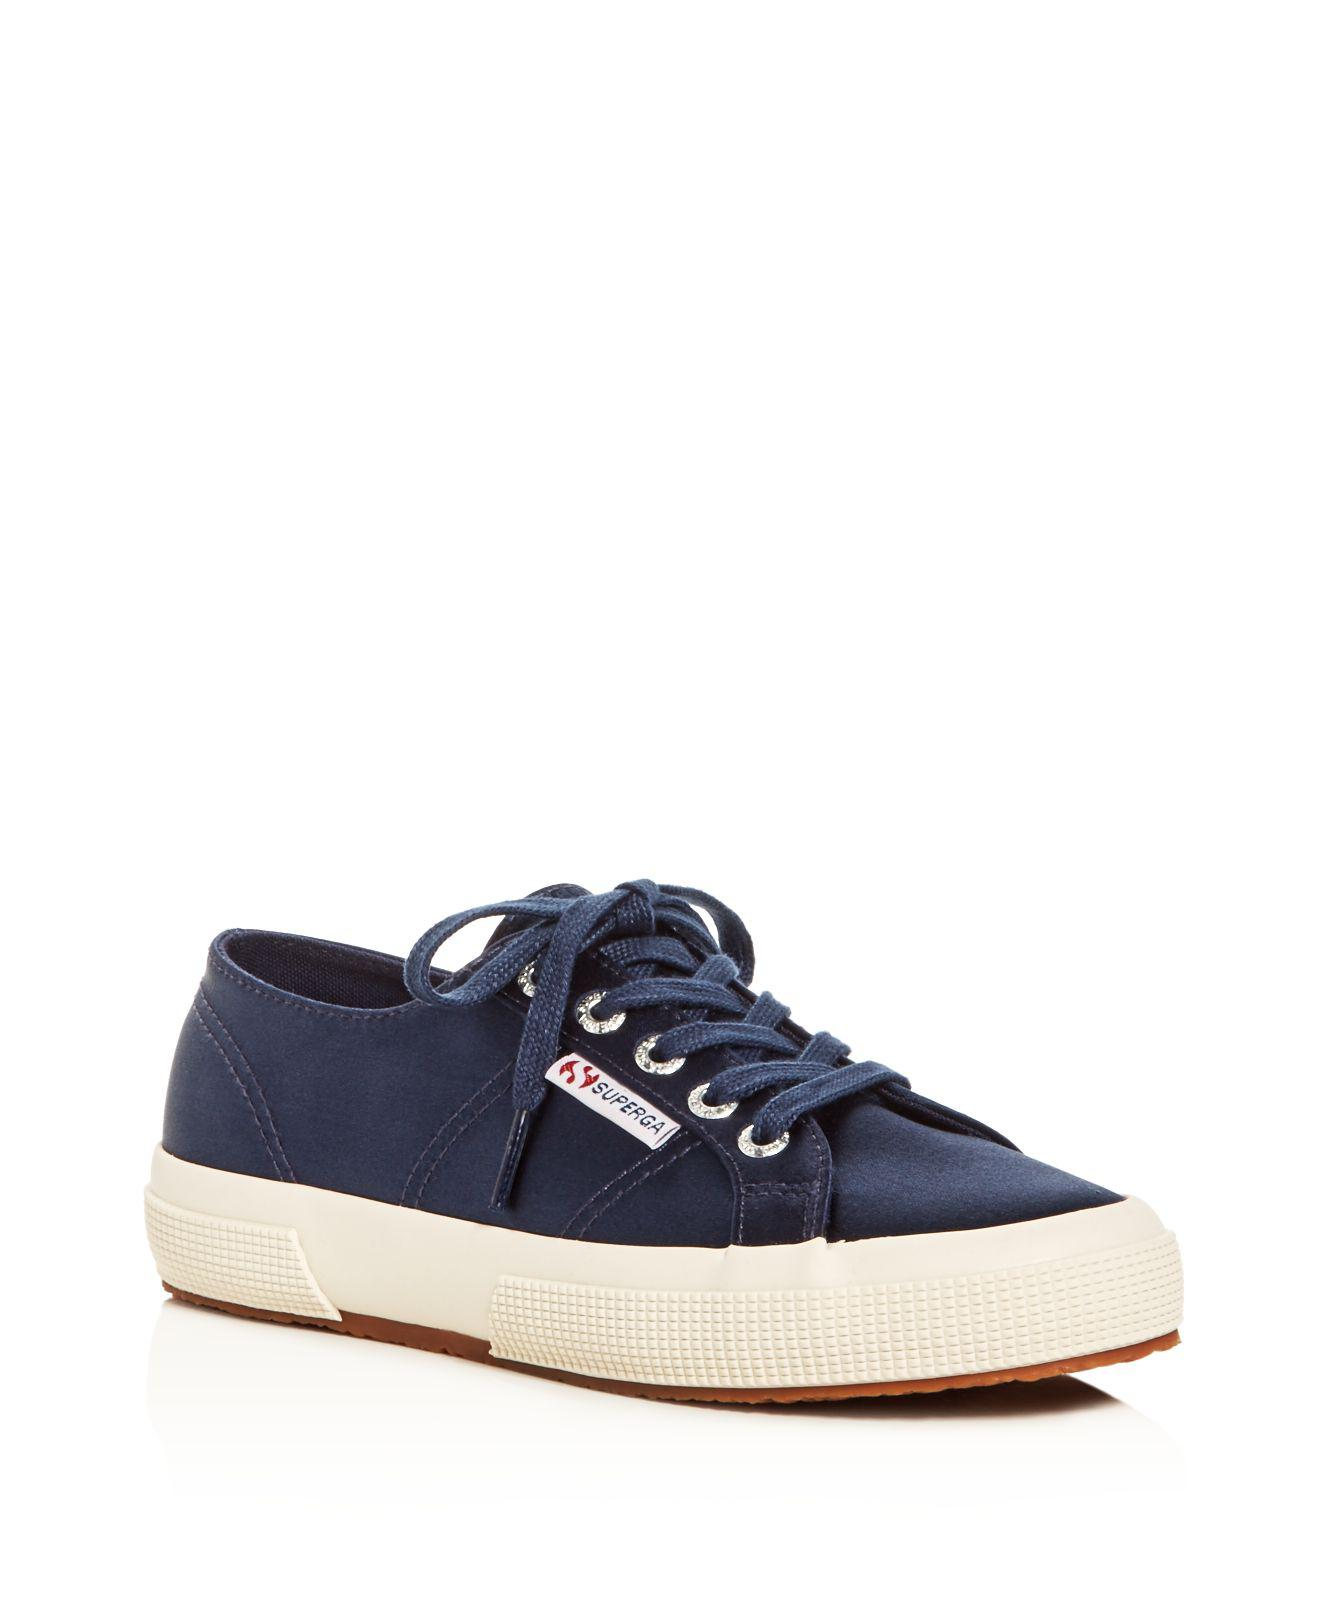 Superga Classic Satin Lace Up Sneakers oMIs6Mblyb